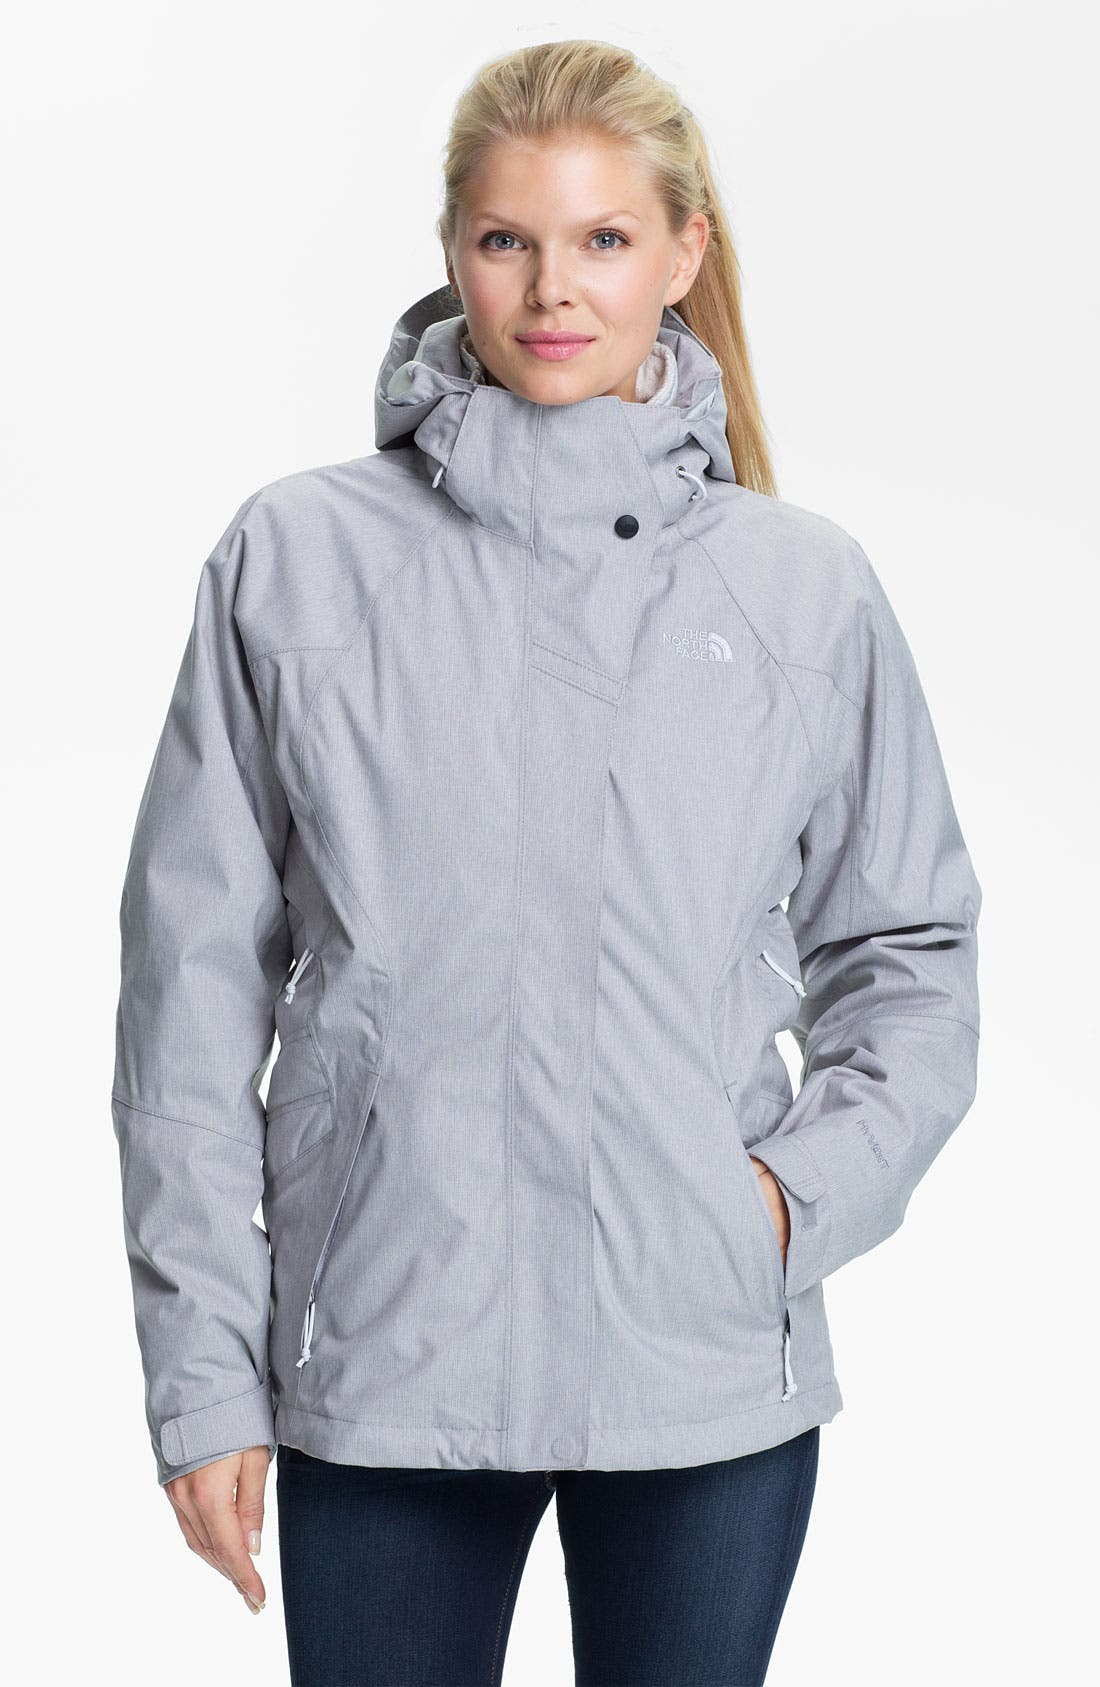 Main Image - The North Face 'Aphelion' TriClimate® 3-in-1 Jacket